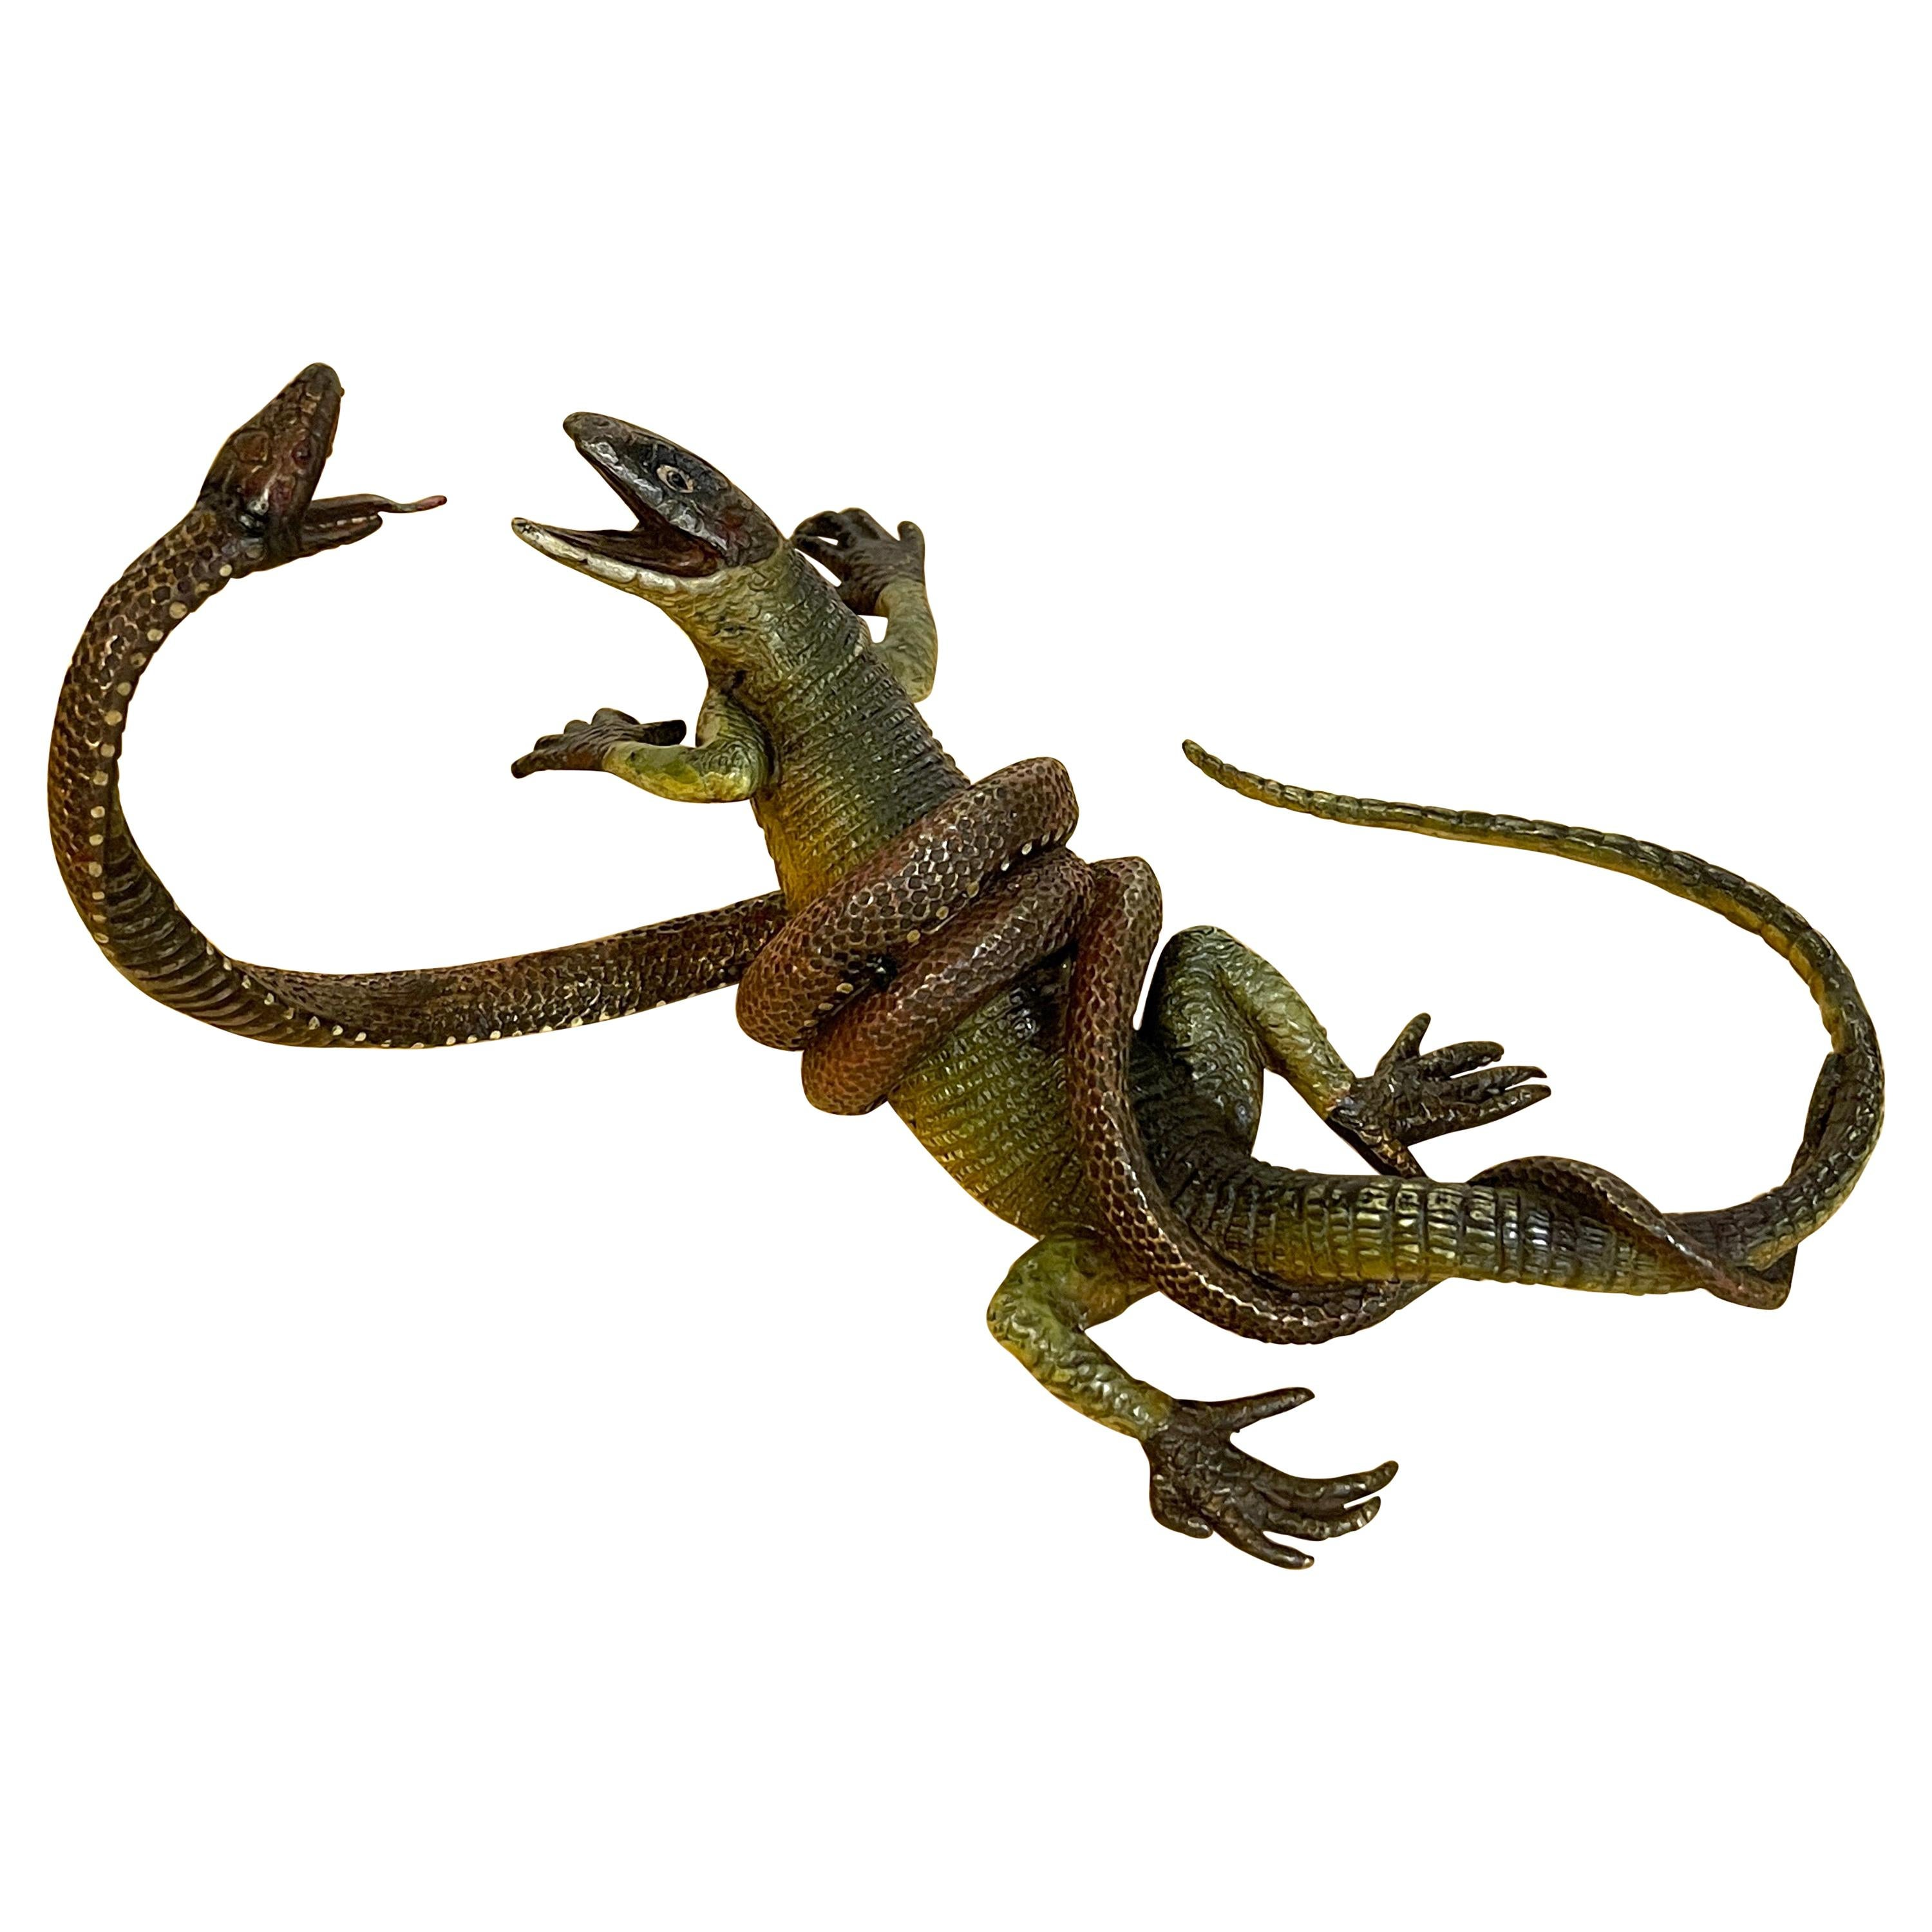 Viennese Cold Painted Bronze Lizard and Snake Sculpture, Signed Gestuz